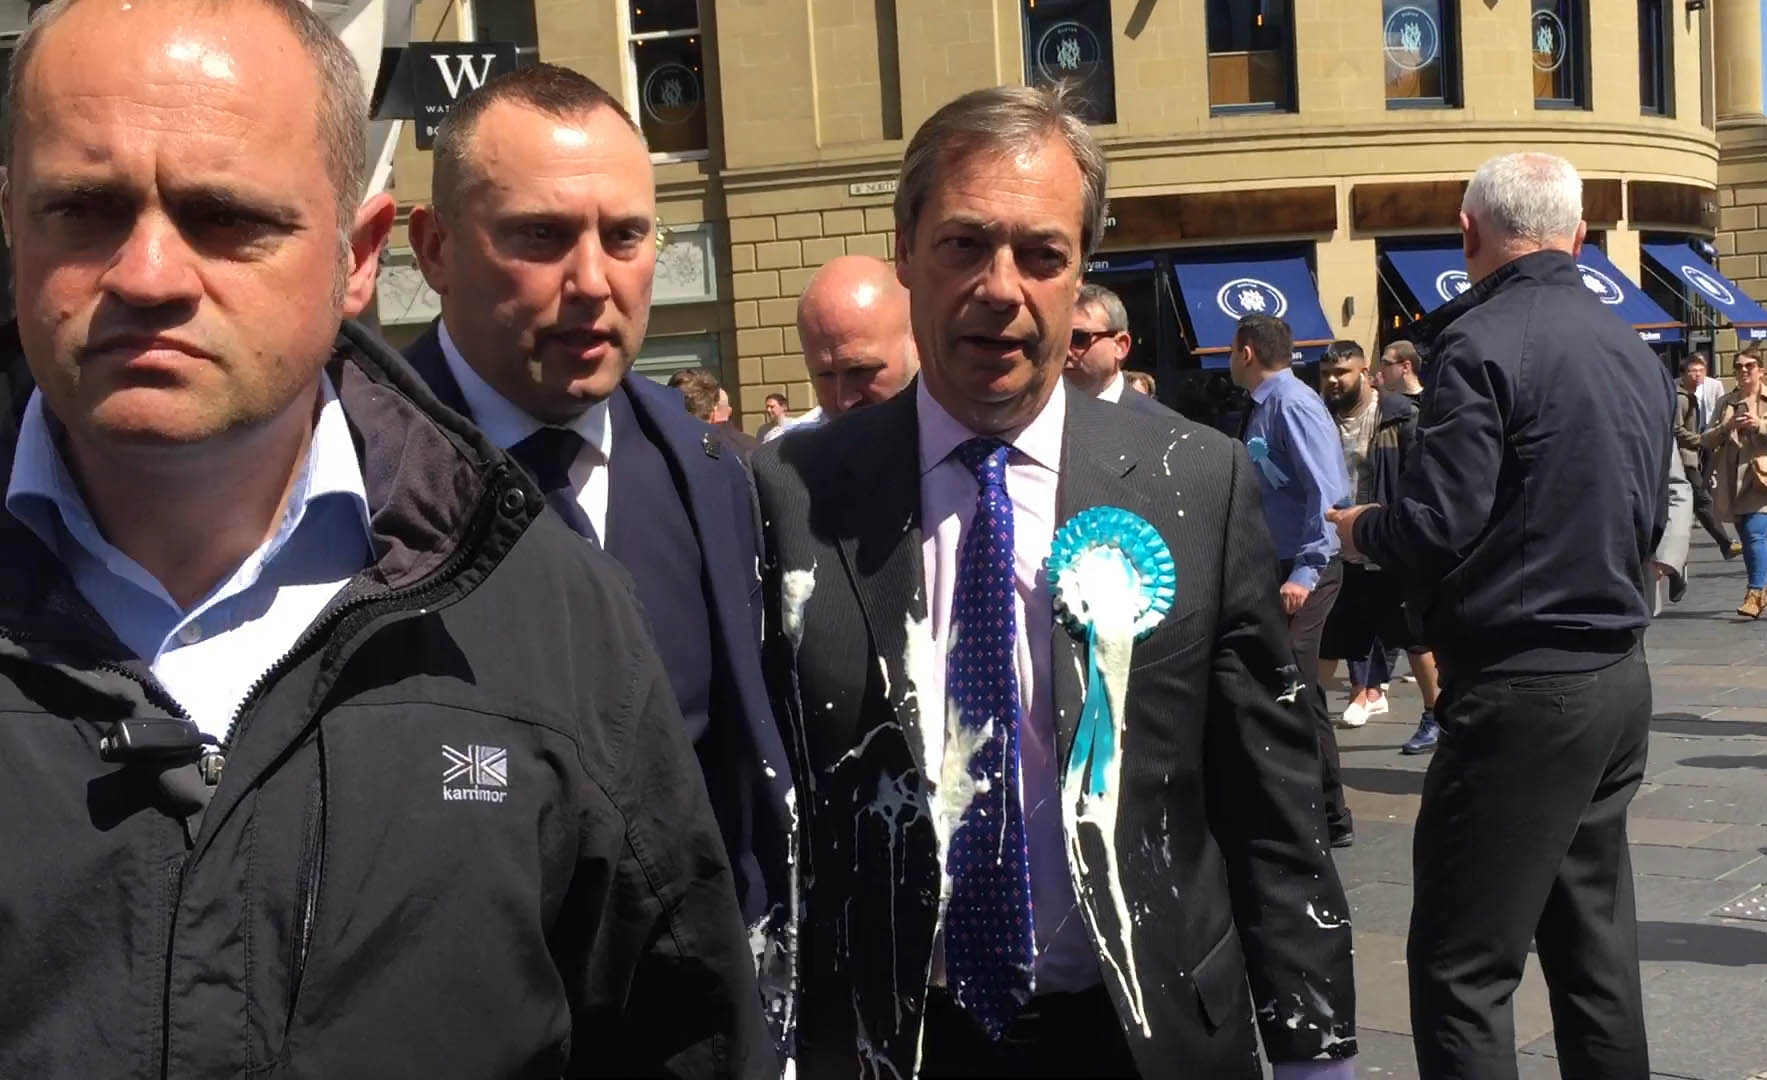 The Brexit Party leader was covered in milkshake by a protester in Newcastle. Credit: PA